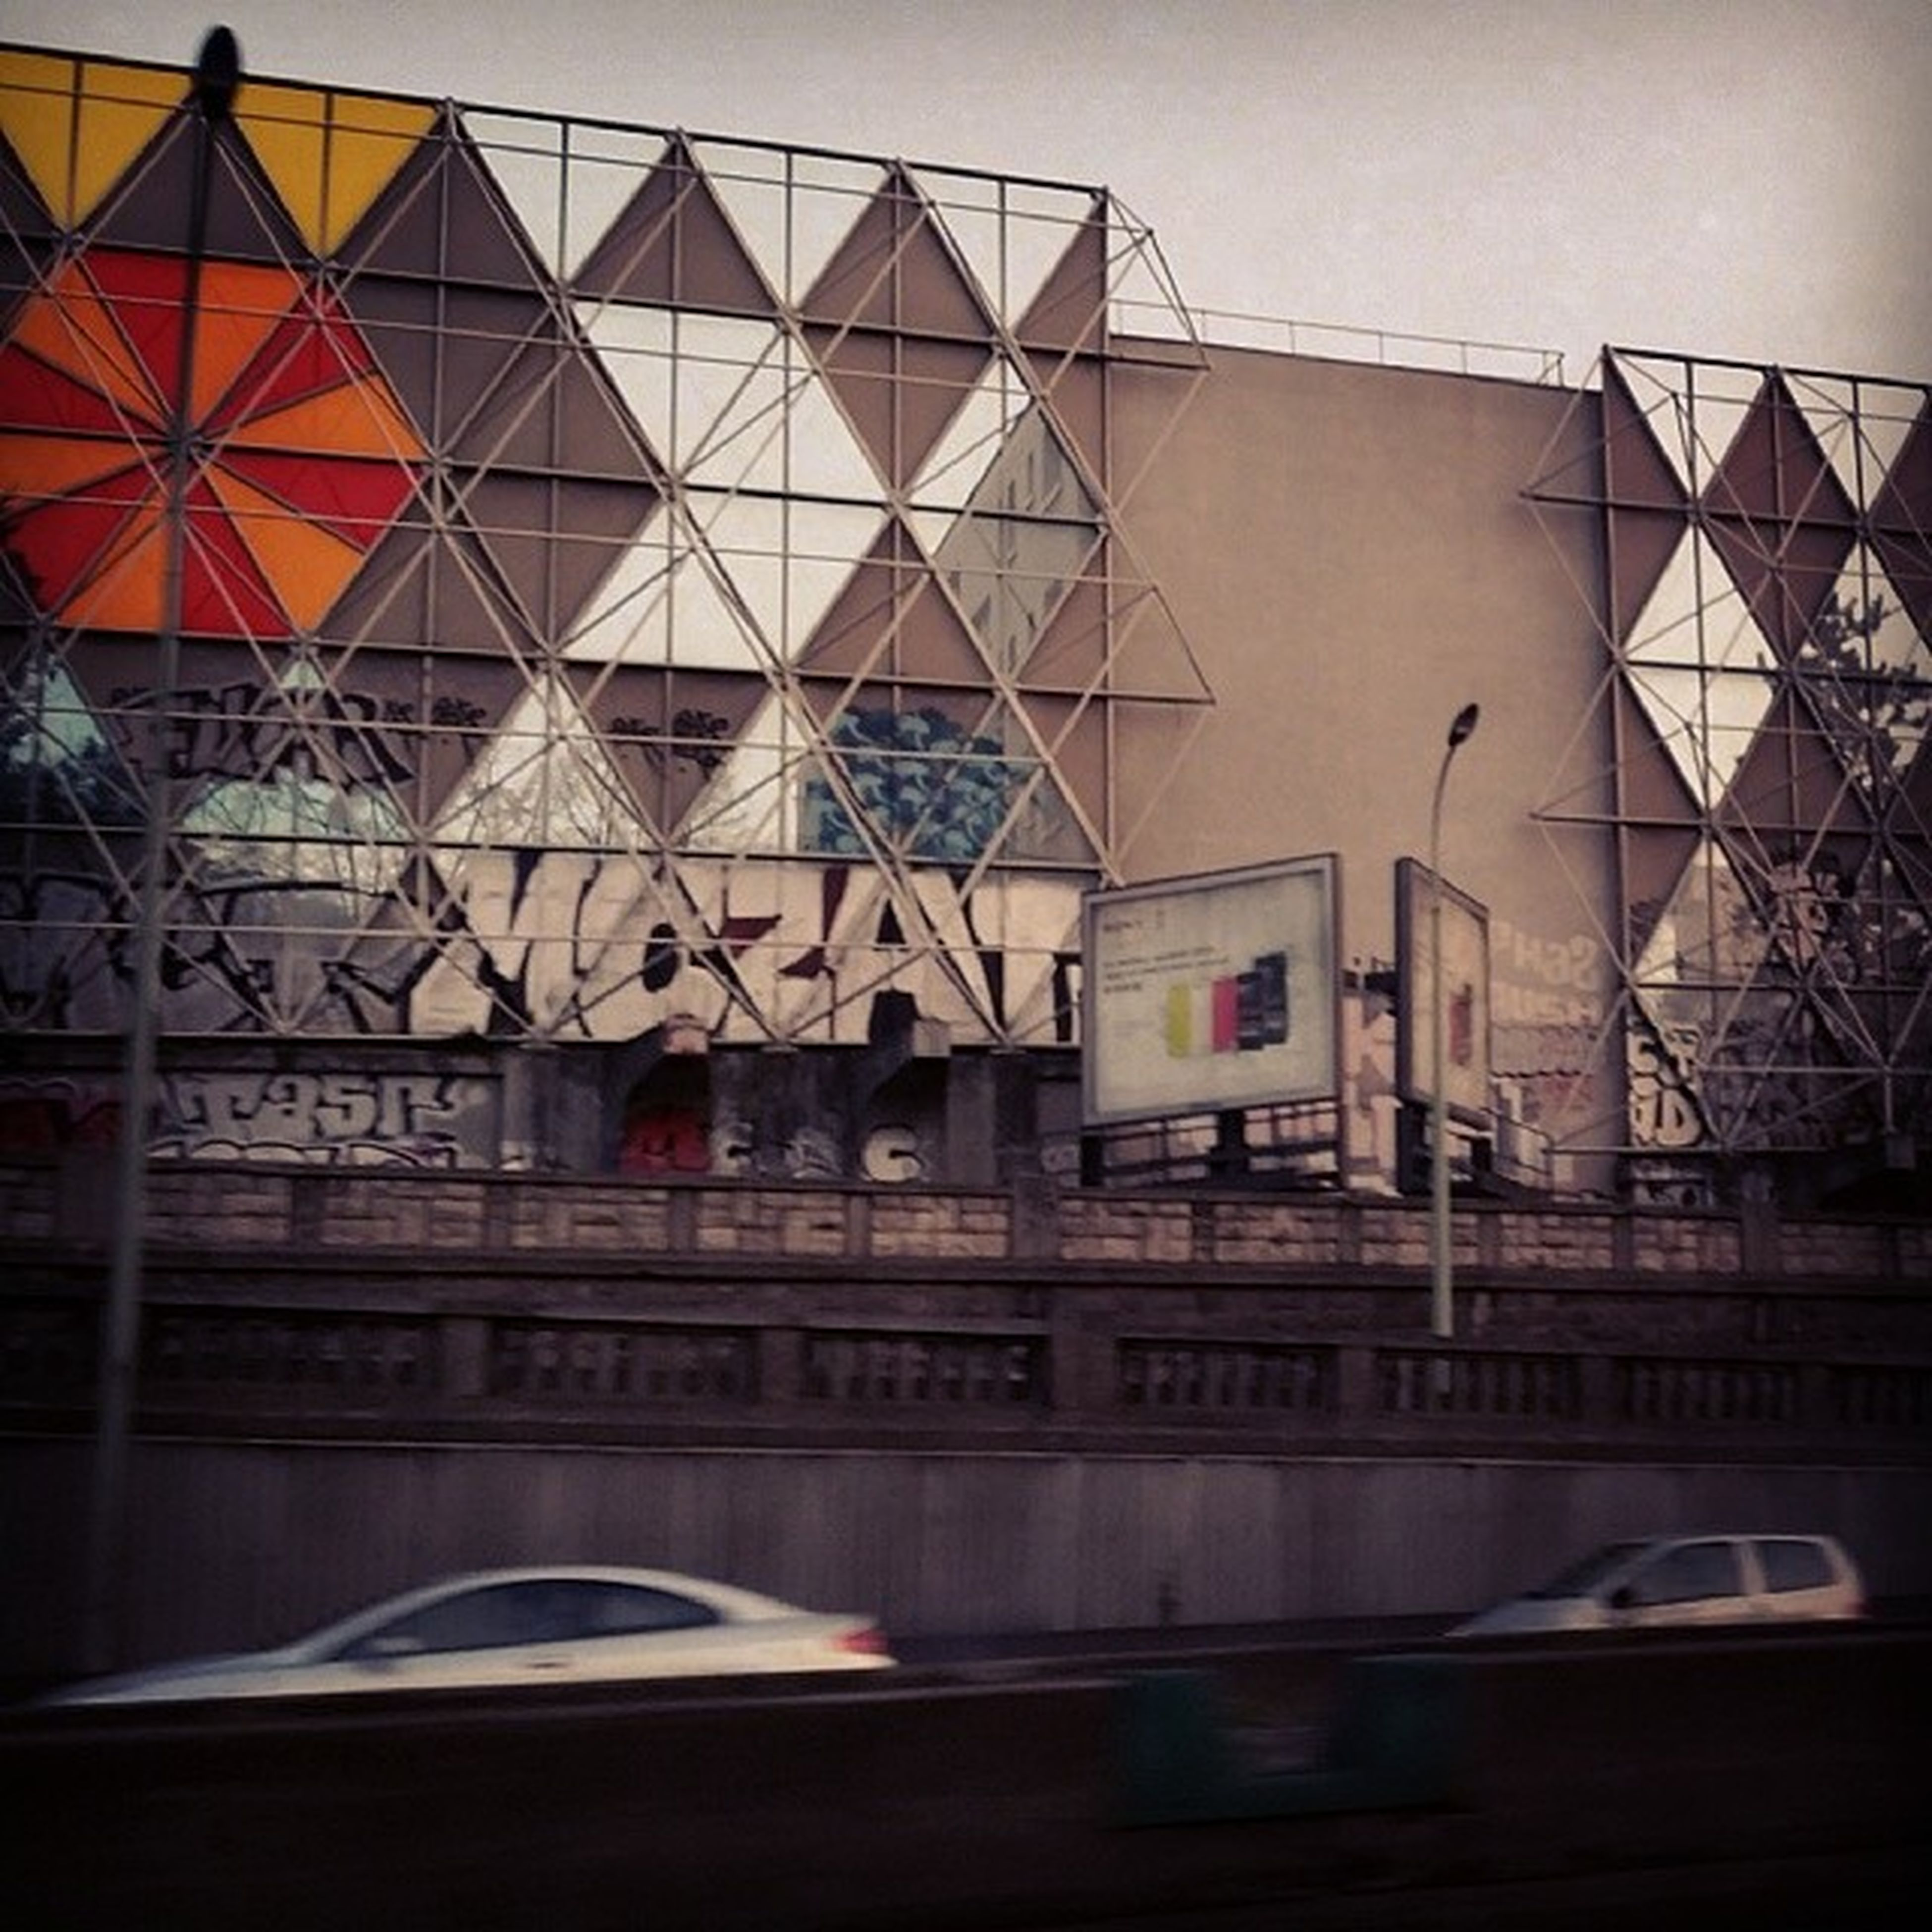 architecture, built structure, building exterior, graffiti, low angle view, sky, text, western script, building, communication, outdoors, art, wall - building feature, no people, day, clear sky, metal, window, creativity, city